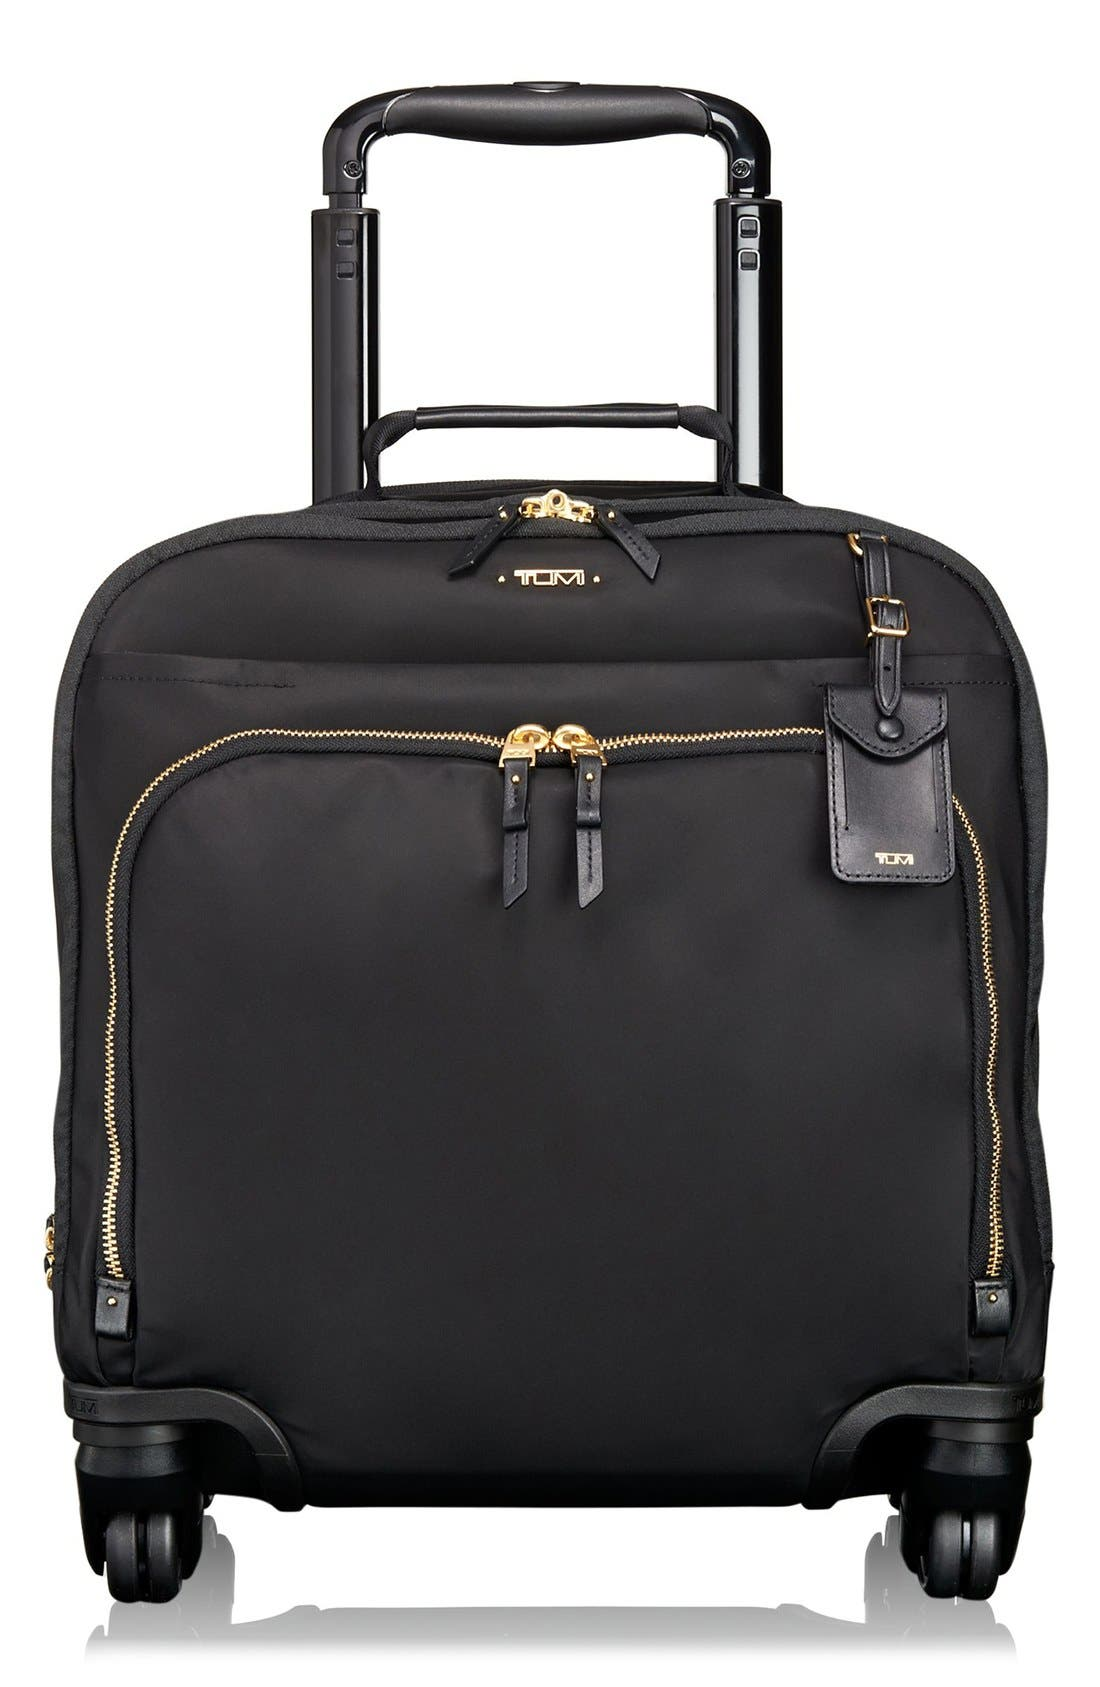 Tumi Voyageur - Oslo Compact 15-Inch Wheeled Carry-On